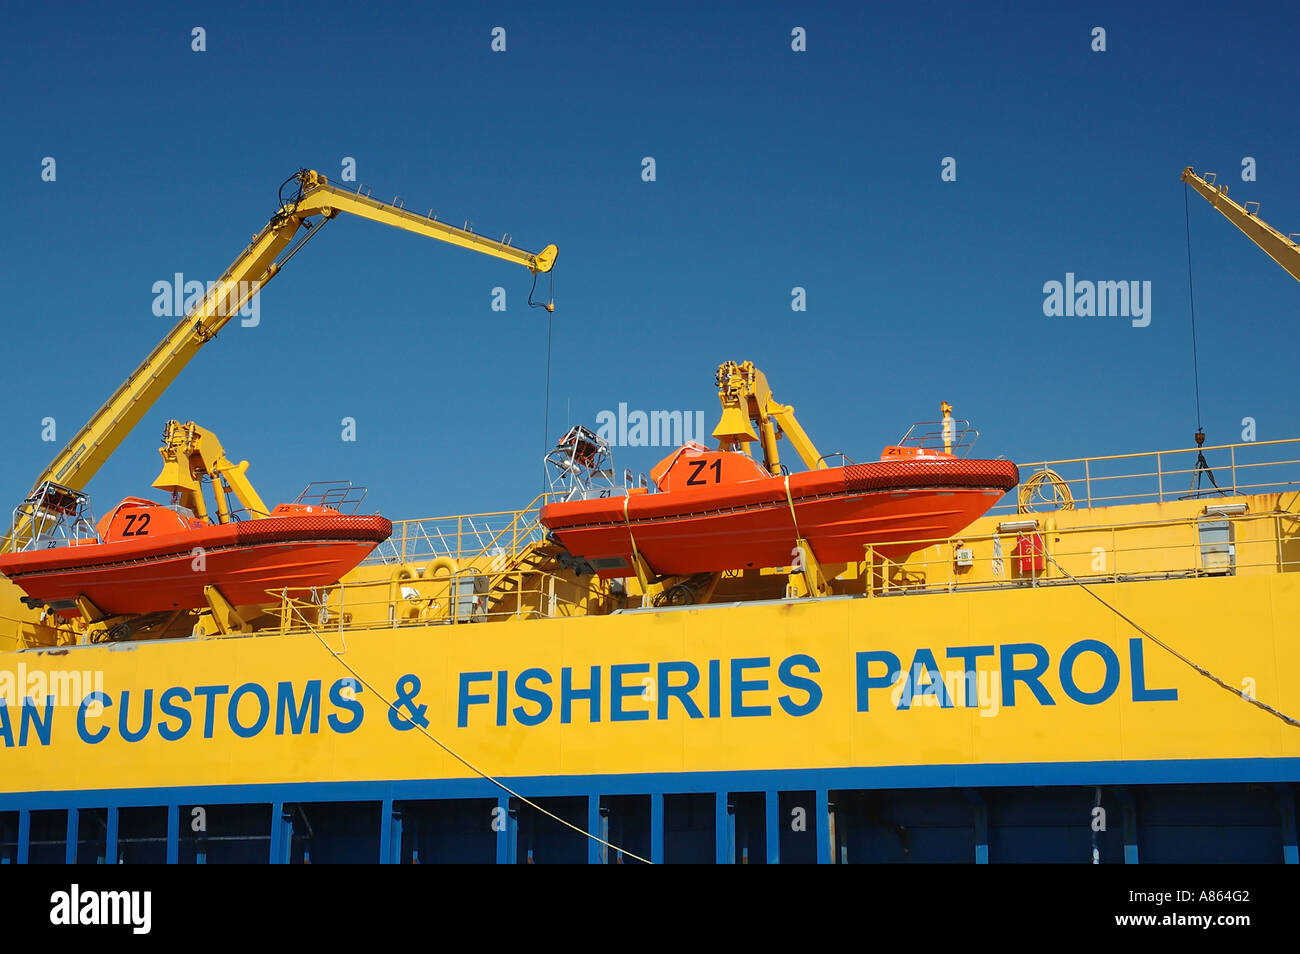 Customs and Fisheries Patrol boats which enforce immigration and fisheries regulations throughout Australian territorial waters - Stock Image